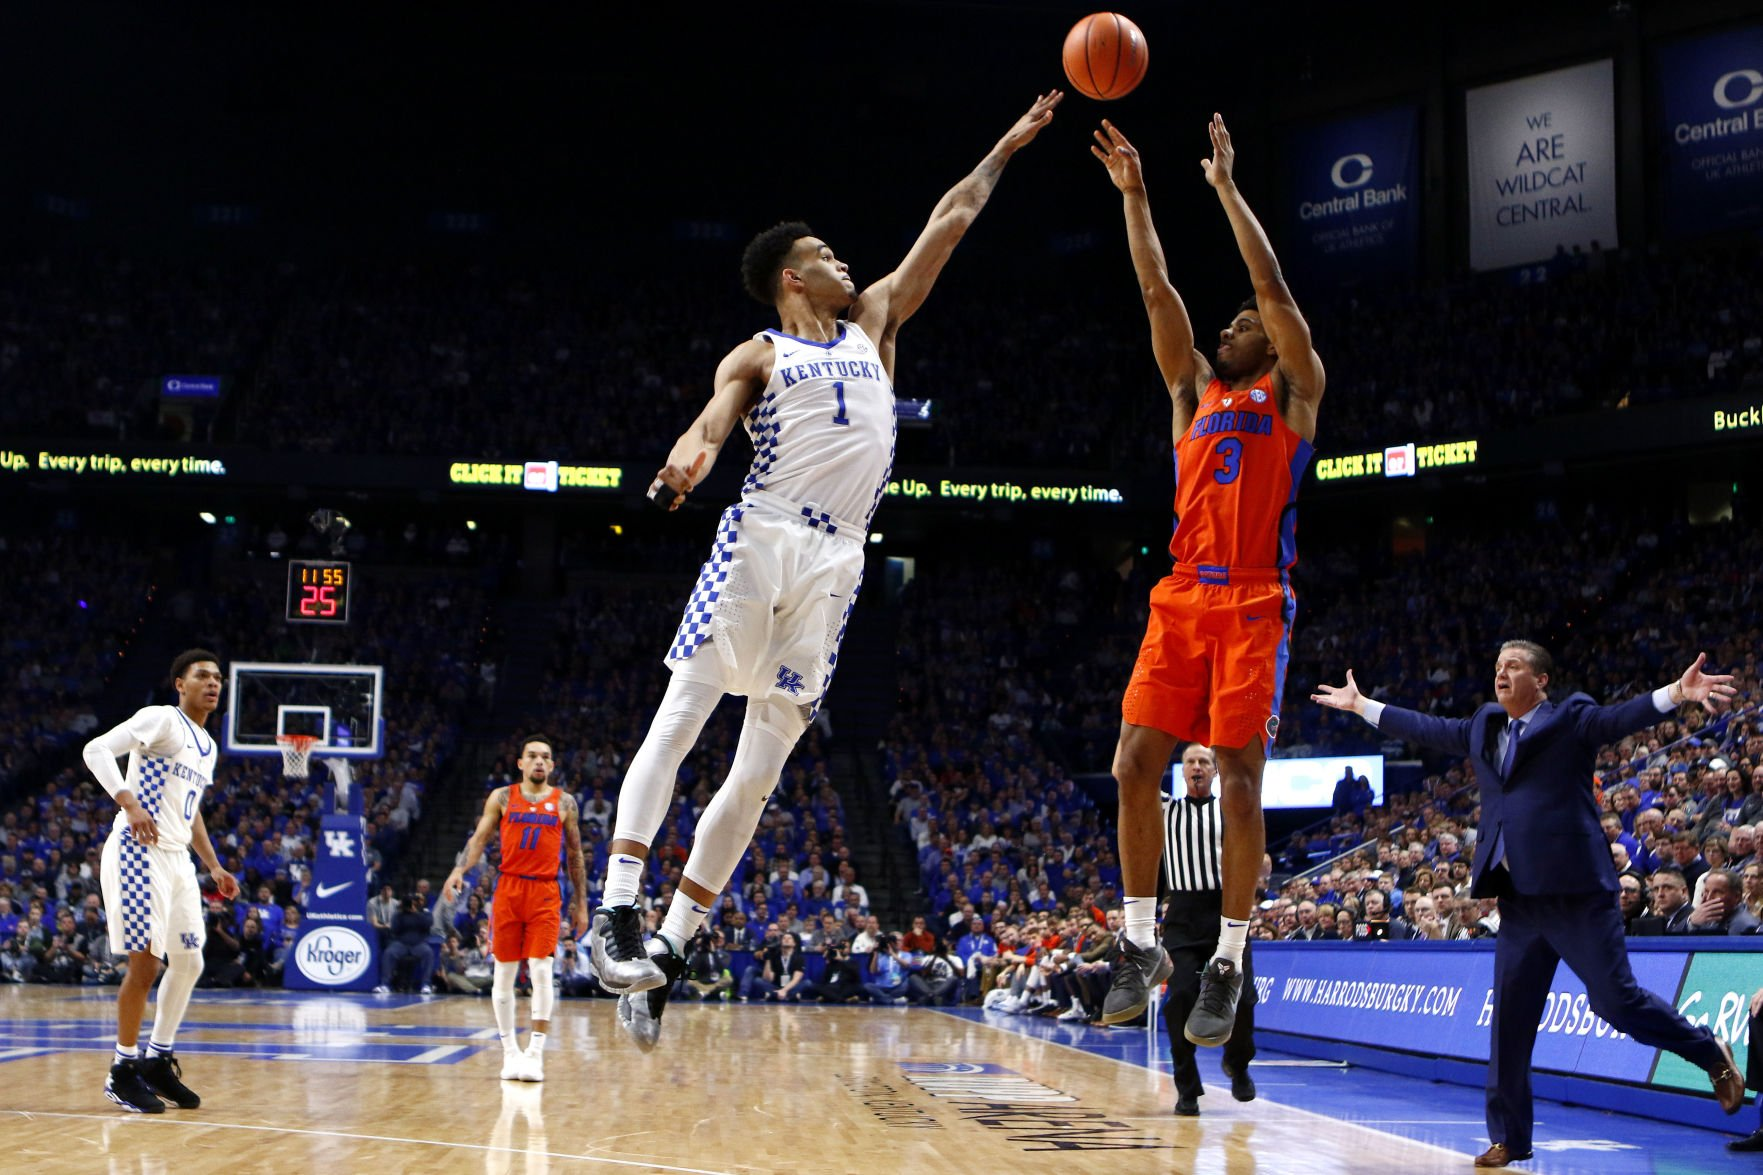 Kentucky Men's basketball vs. Florida | Kentucky Kernel